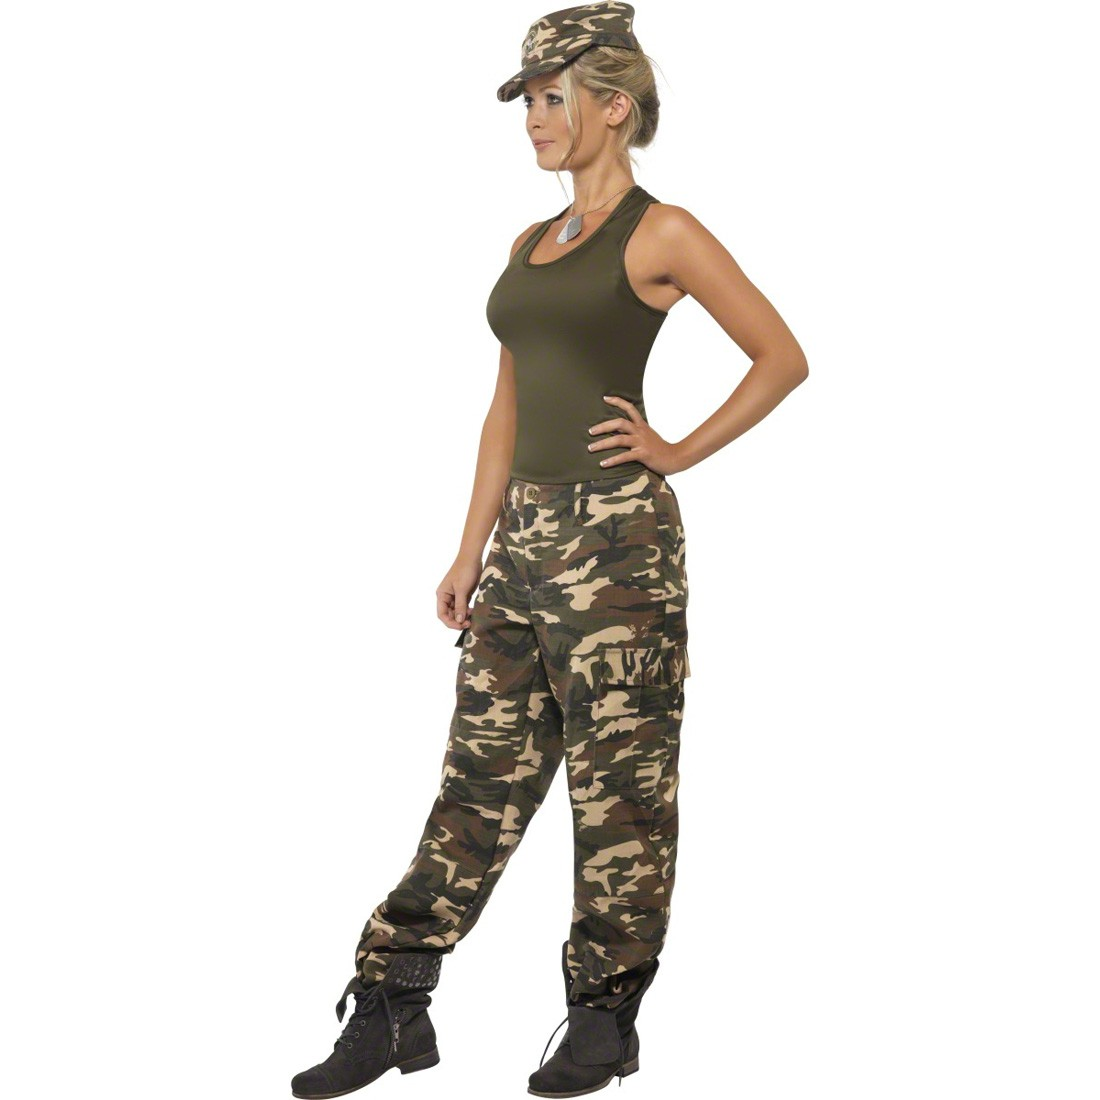 soldatin kost m armee verkleidung khaki s 36 38 army girl kost m camouflage outfit sexy kost m. Black Bedroom Furniture Sets. Home Design Ideas